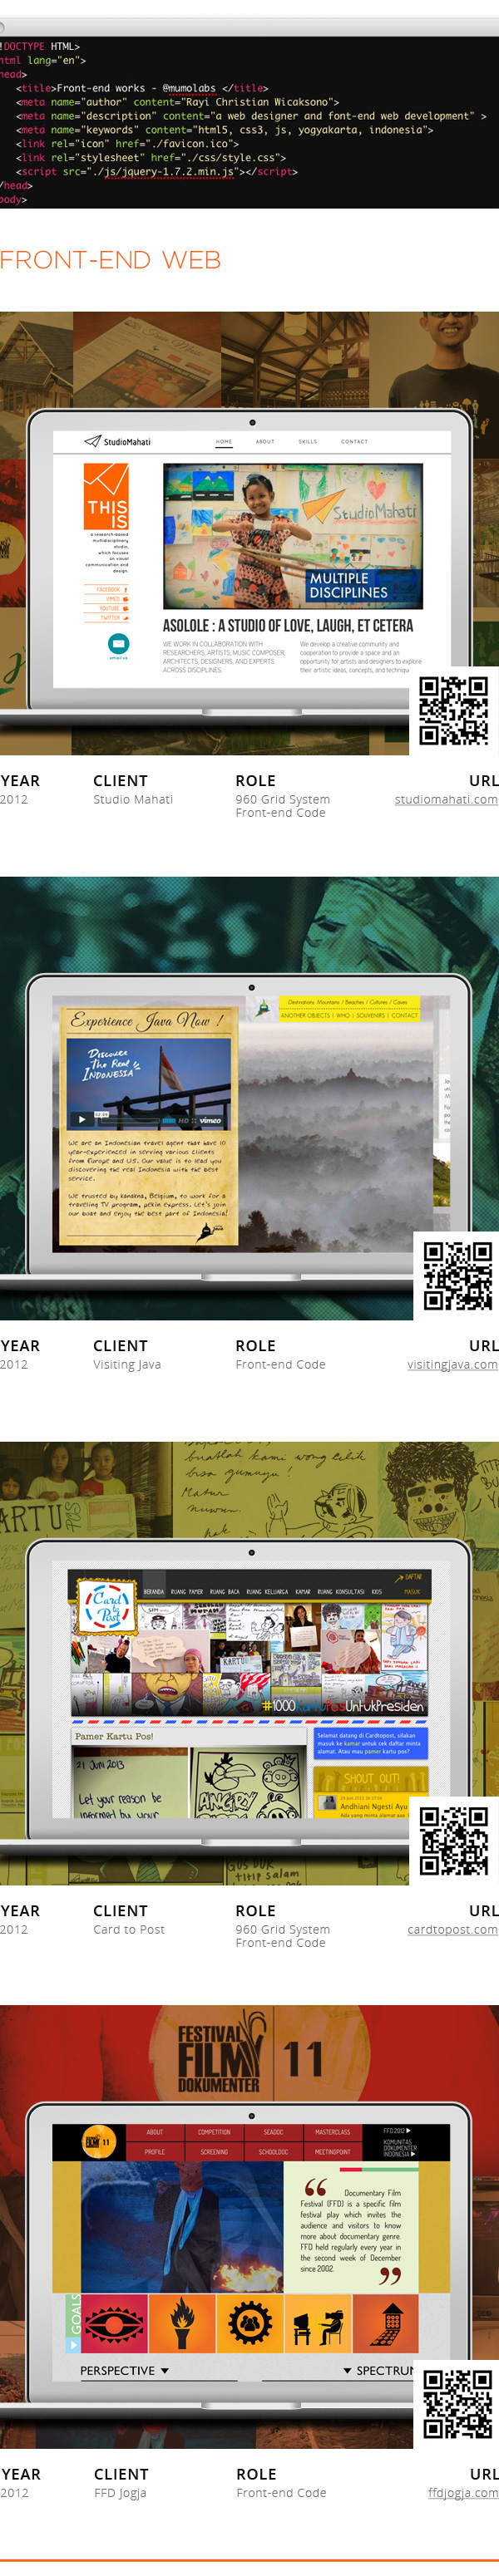 studio mahati visitingjava card to post FFD front-end code 960 grid system Single Page Website